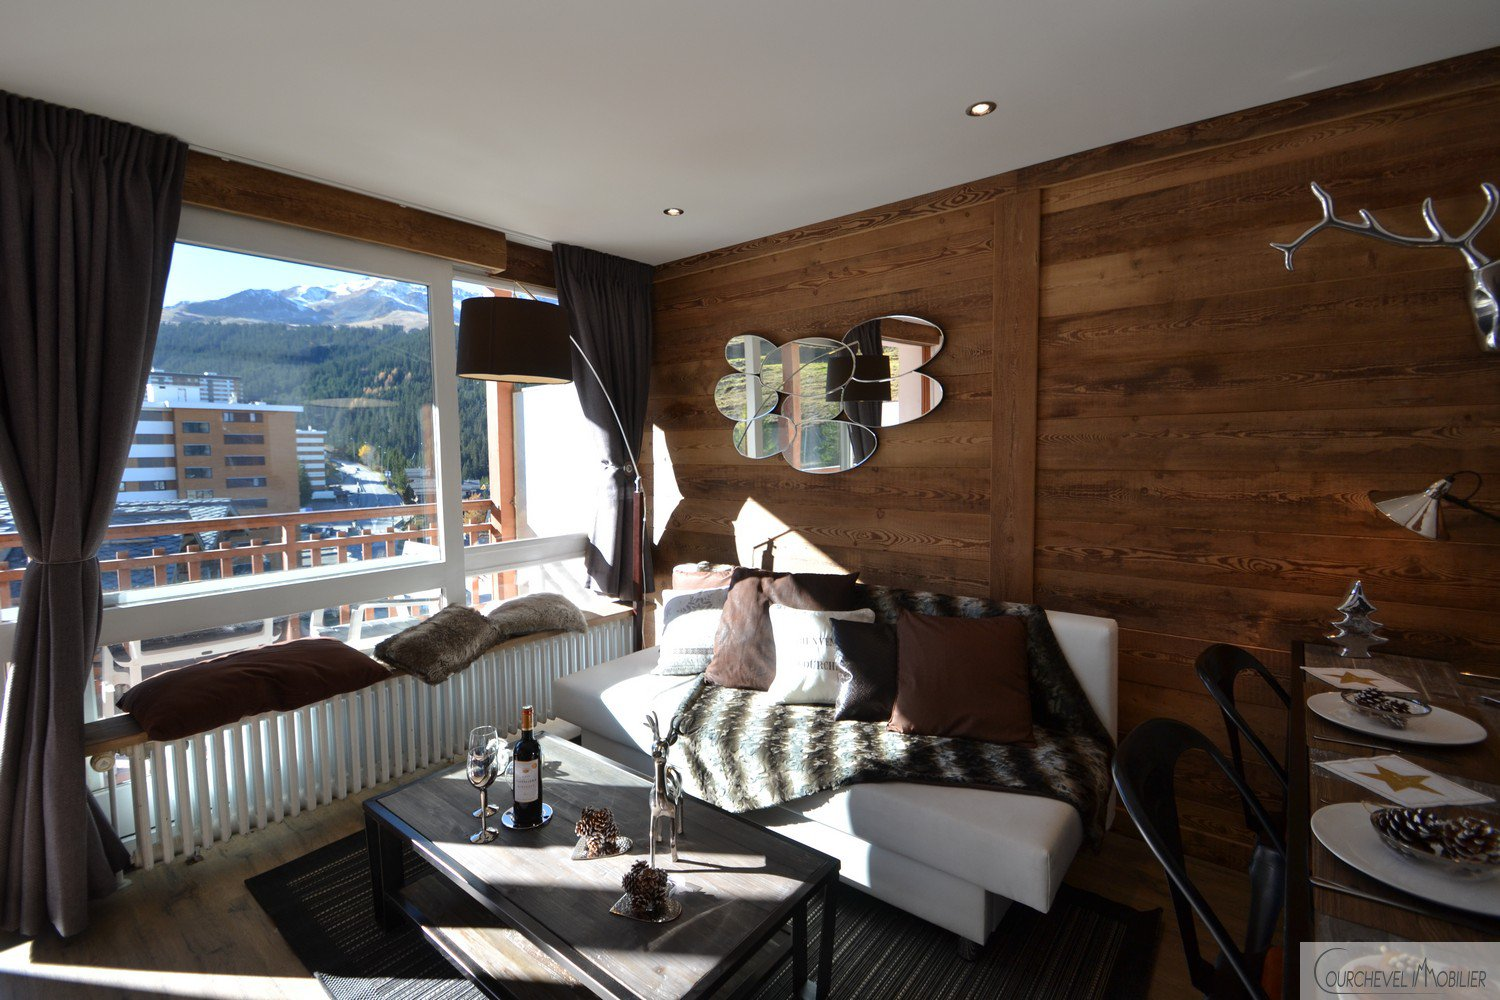 Courchevel Immobilier - Résidence 1650 - 2 bedroom apartment